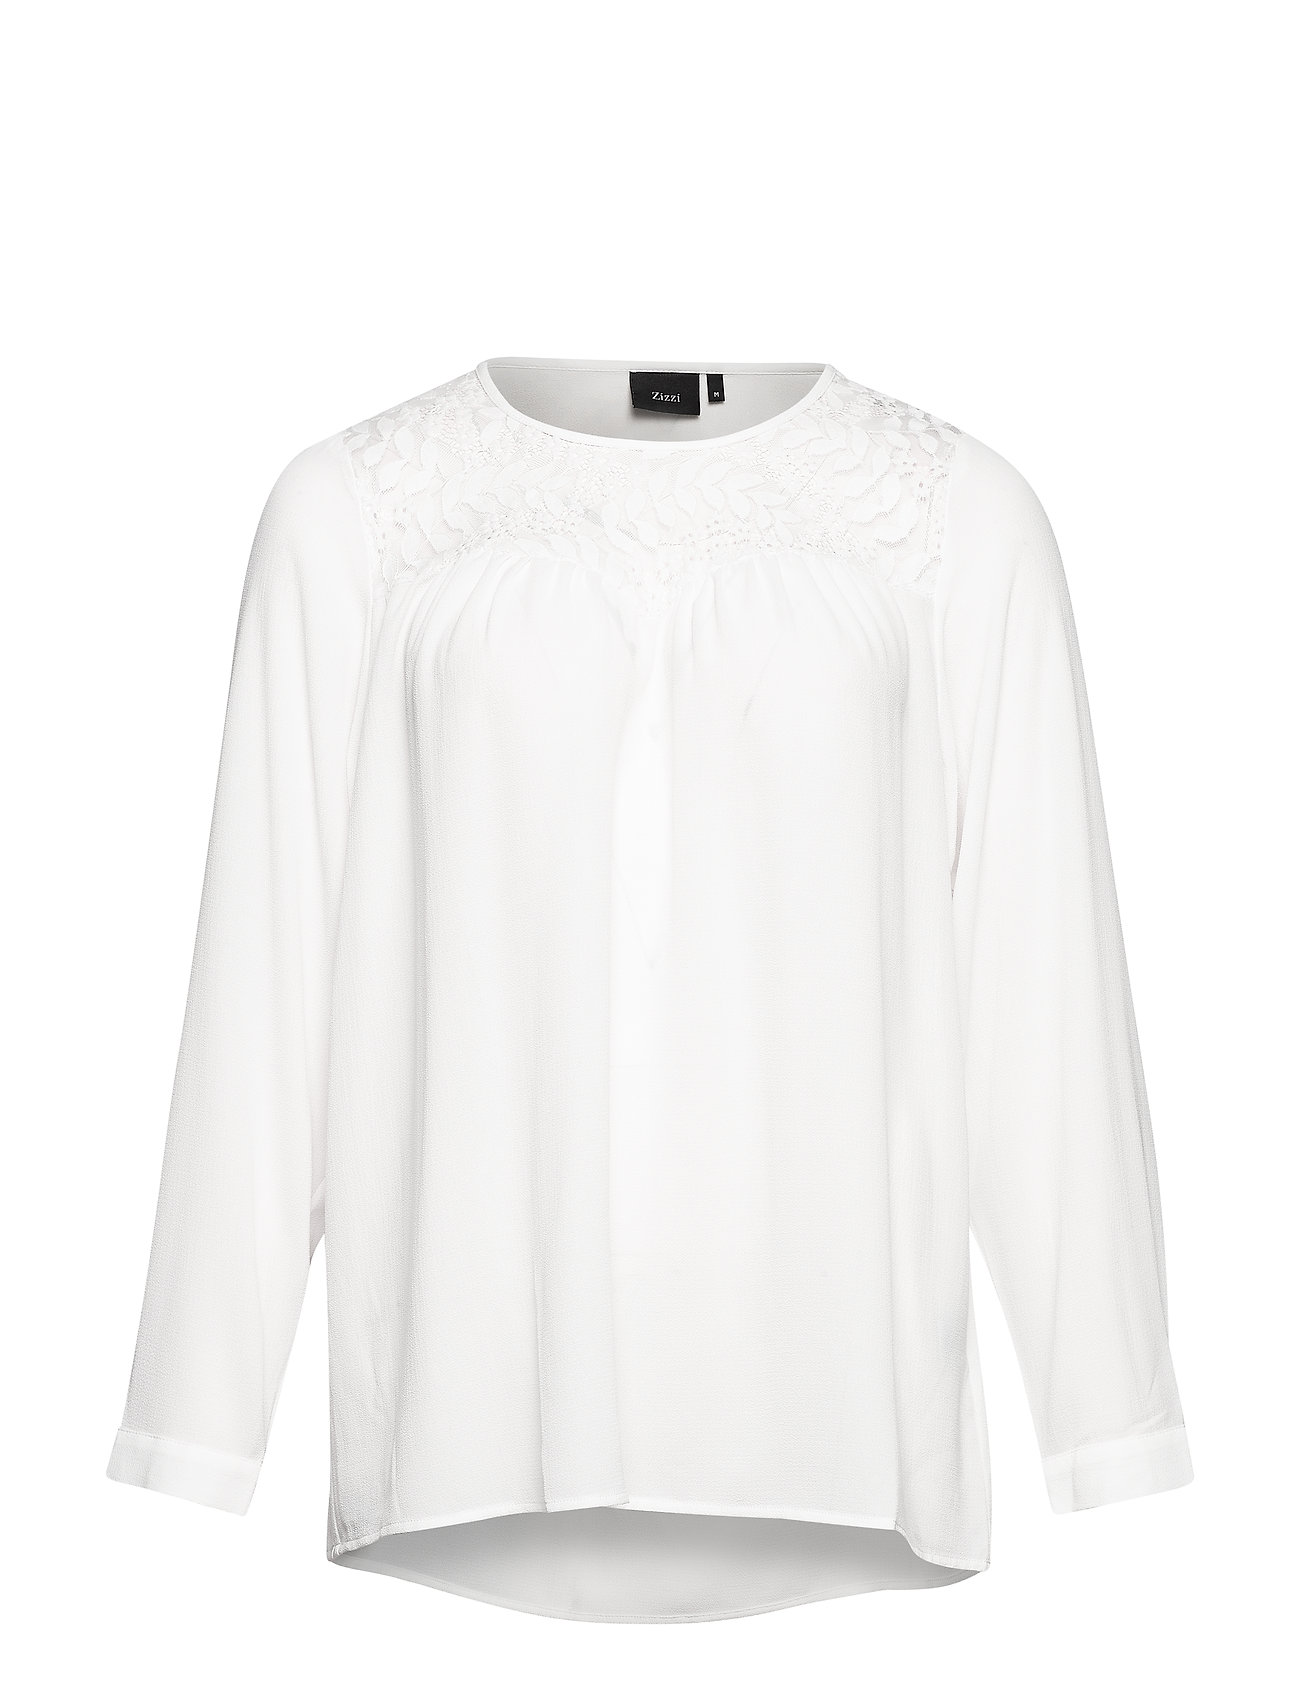 Zizzi XGERTRUD, L/S, BLOUSE - OFF-WHITE